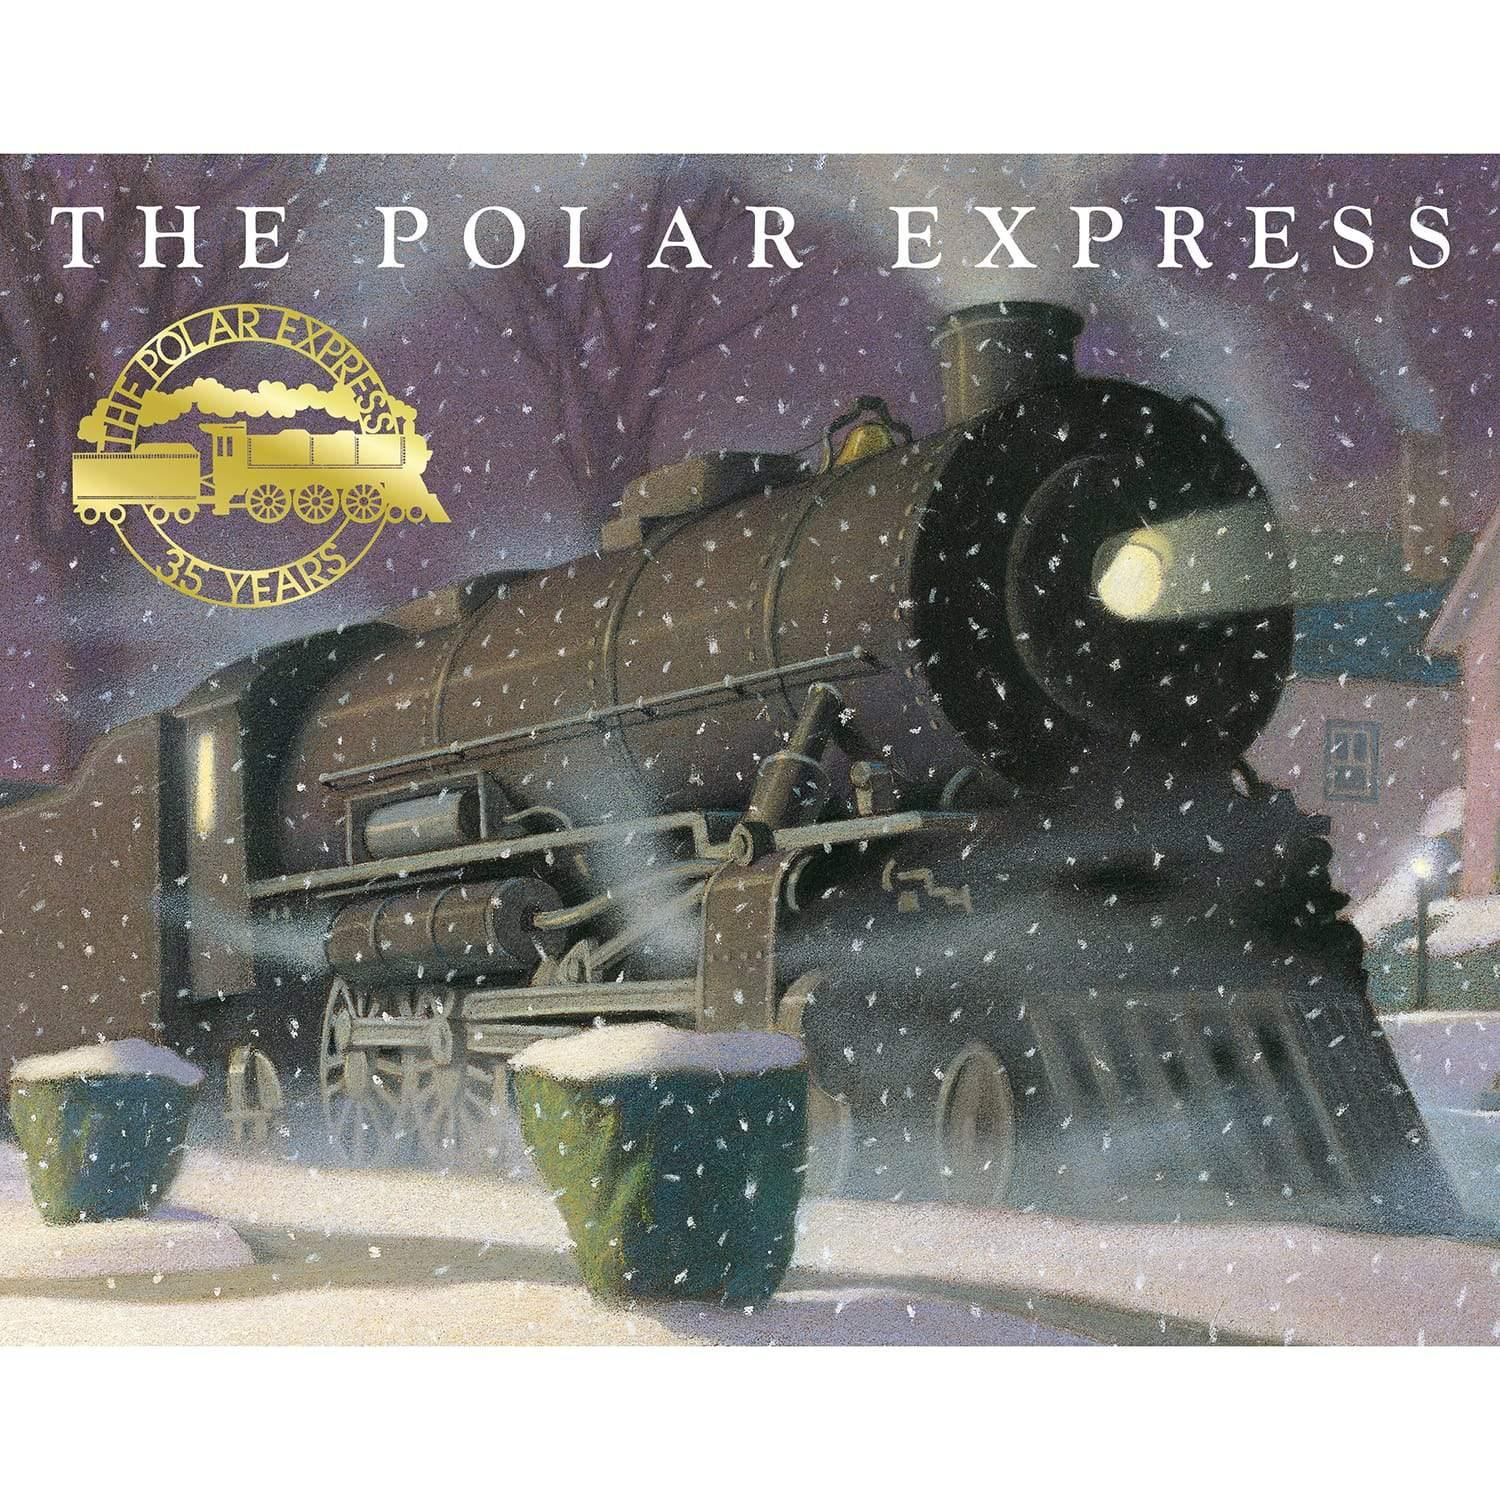 Polar Express 35th Anniversary edition